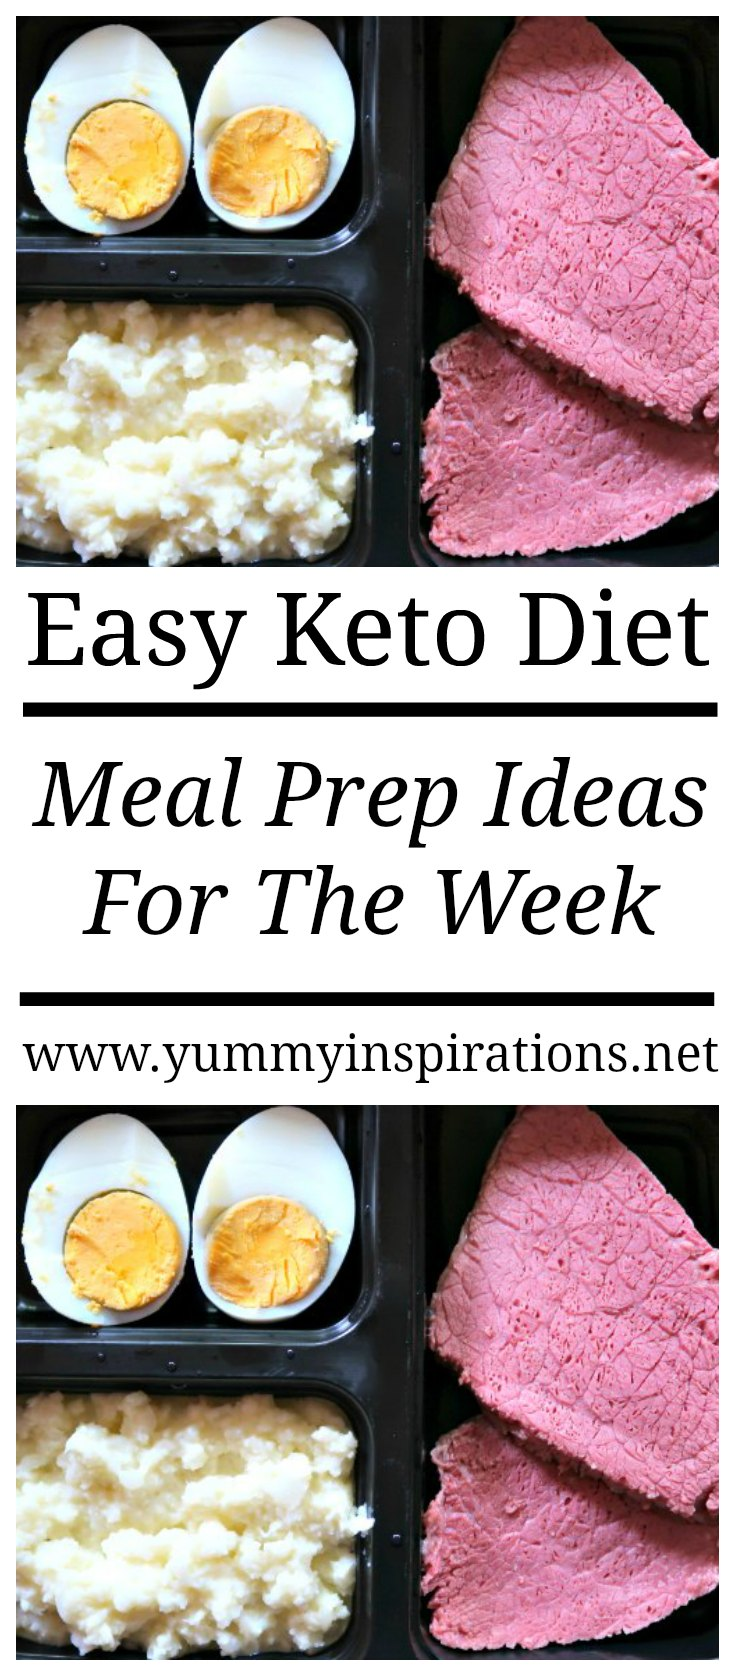 Keto Meal Prep Ideas For The Week Easy Sunday Low Carb Recipes